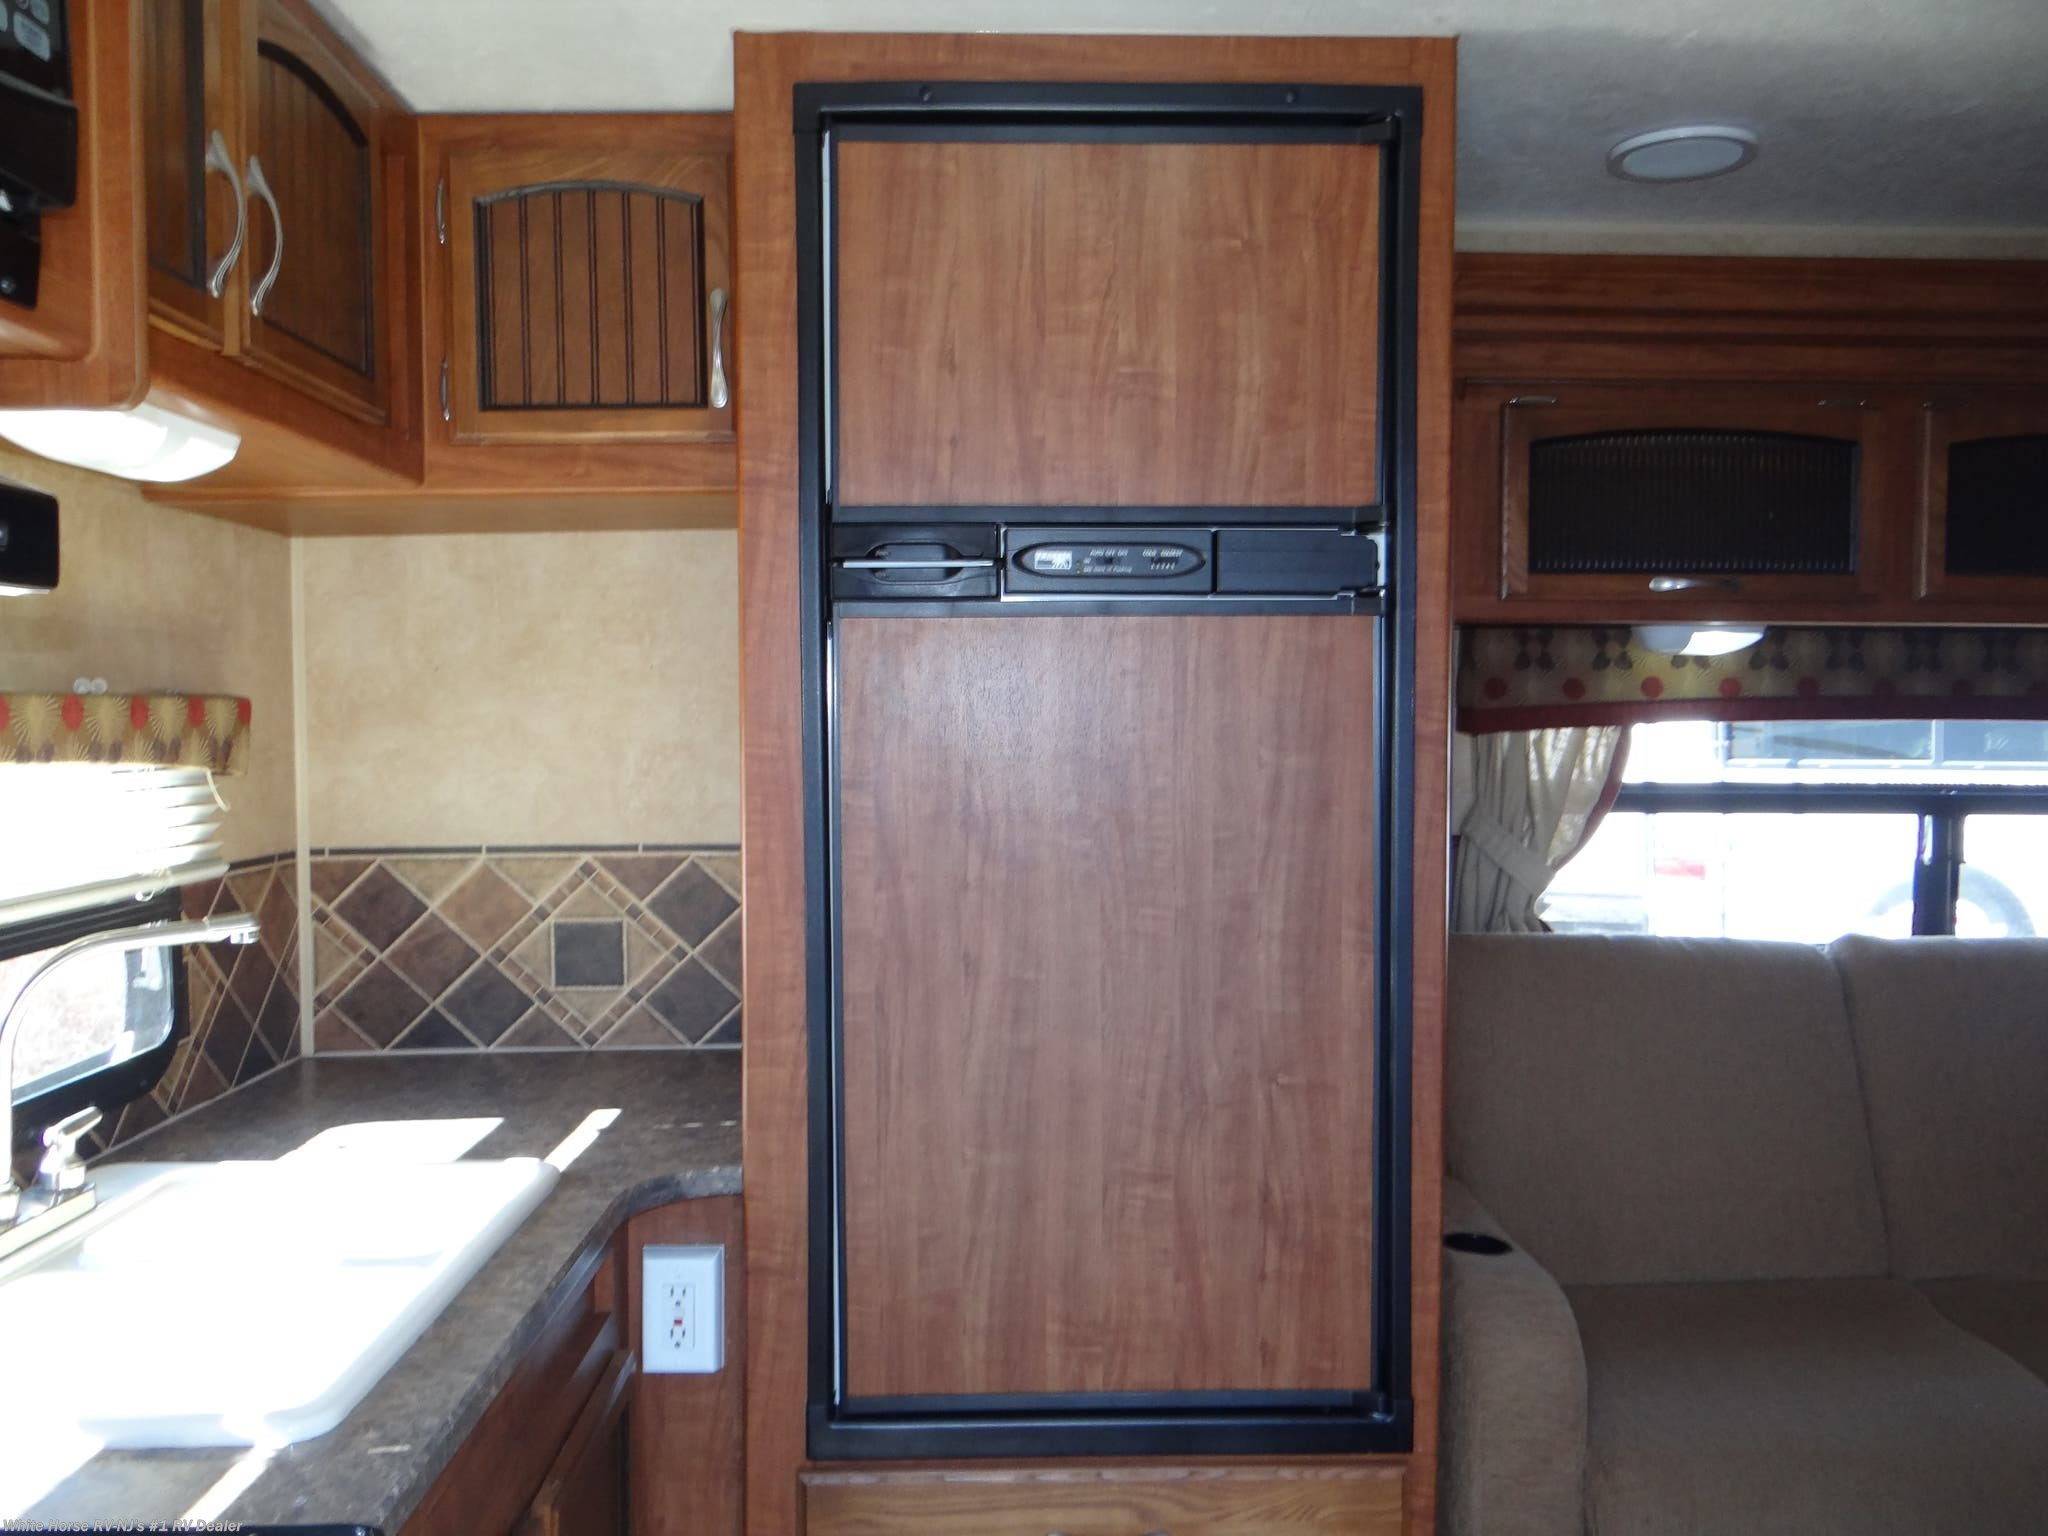 #TT12226 - 2011 Jayco Jay Feather Select 242 Rear Kitchen, Front Queen,  Sofa/Bed Slide for sale in Williamstown NJ